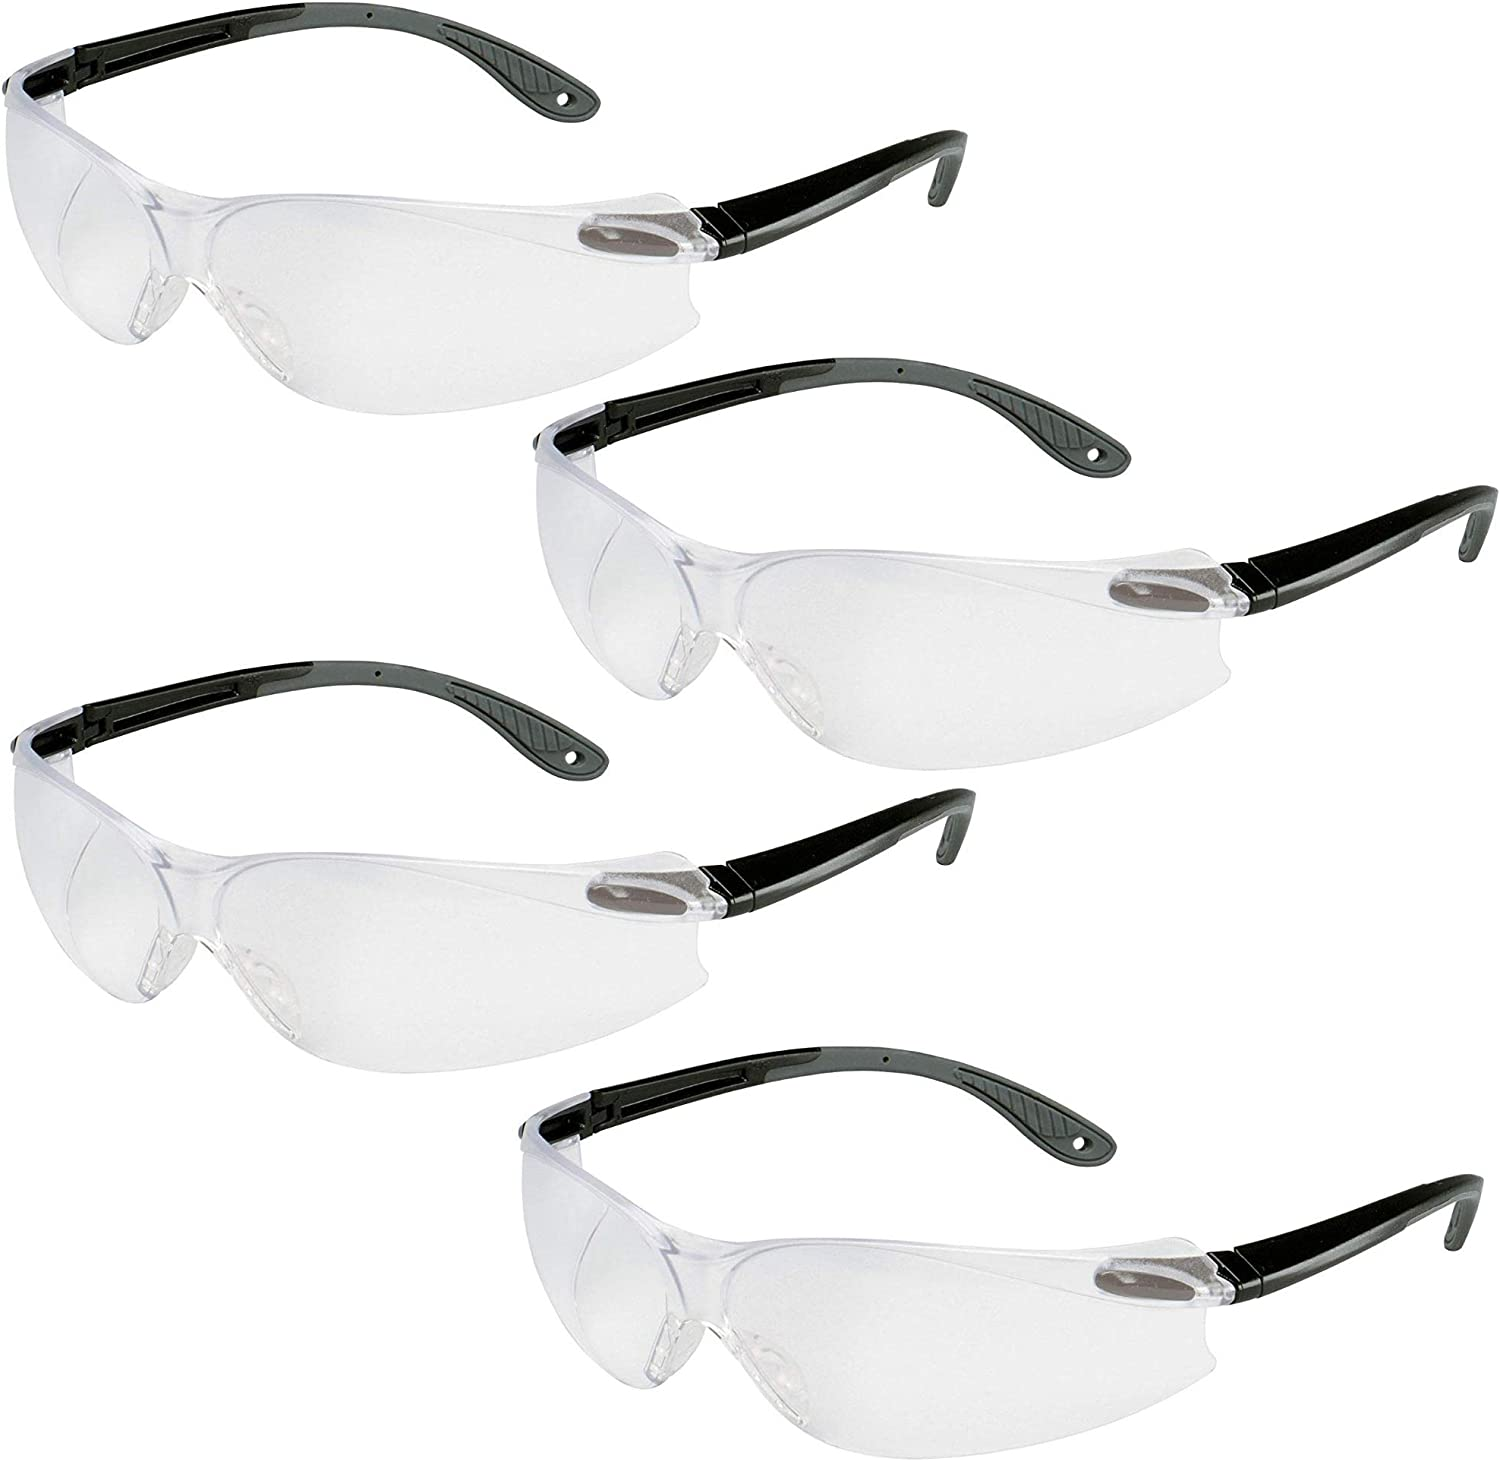 3M 2890S Sealed Safety Goggles Polycarbonate Anti-Fog Clear Lens Work Glasses